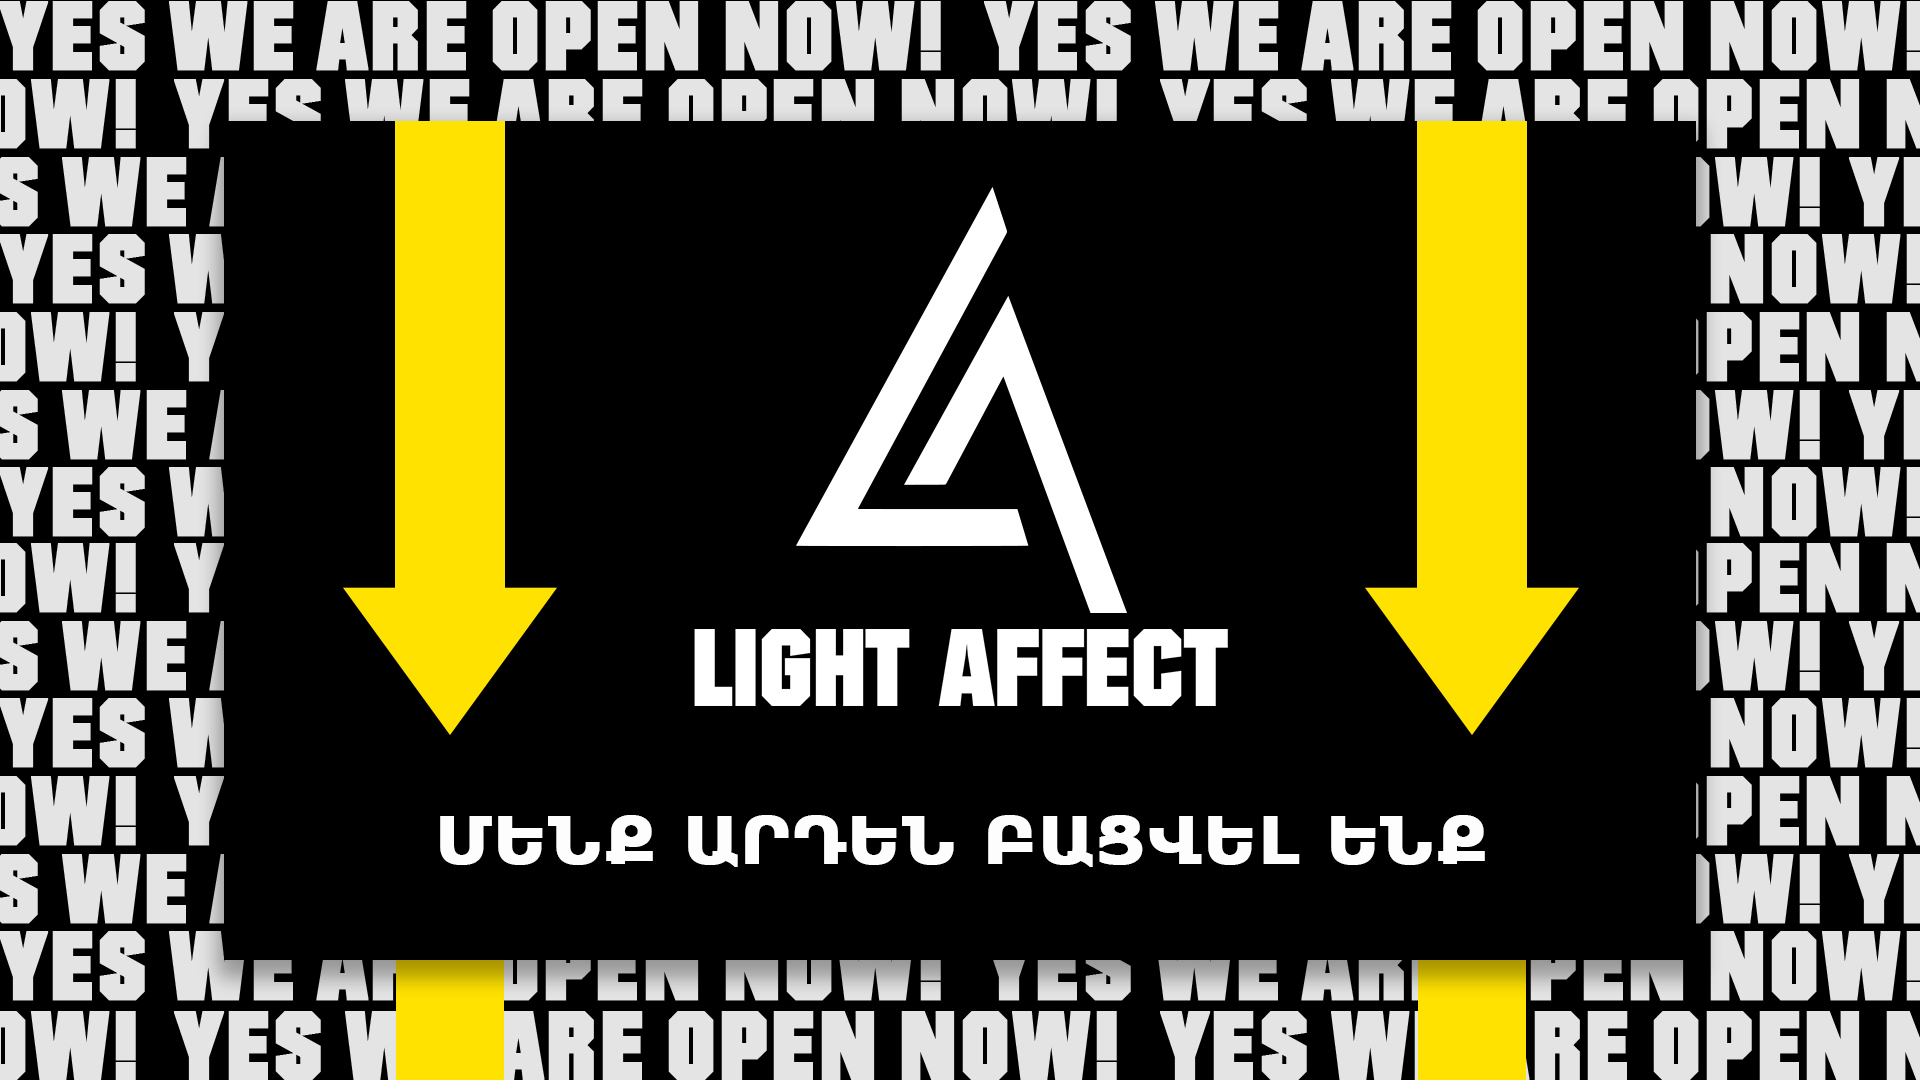 Light Affect